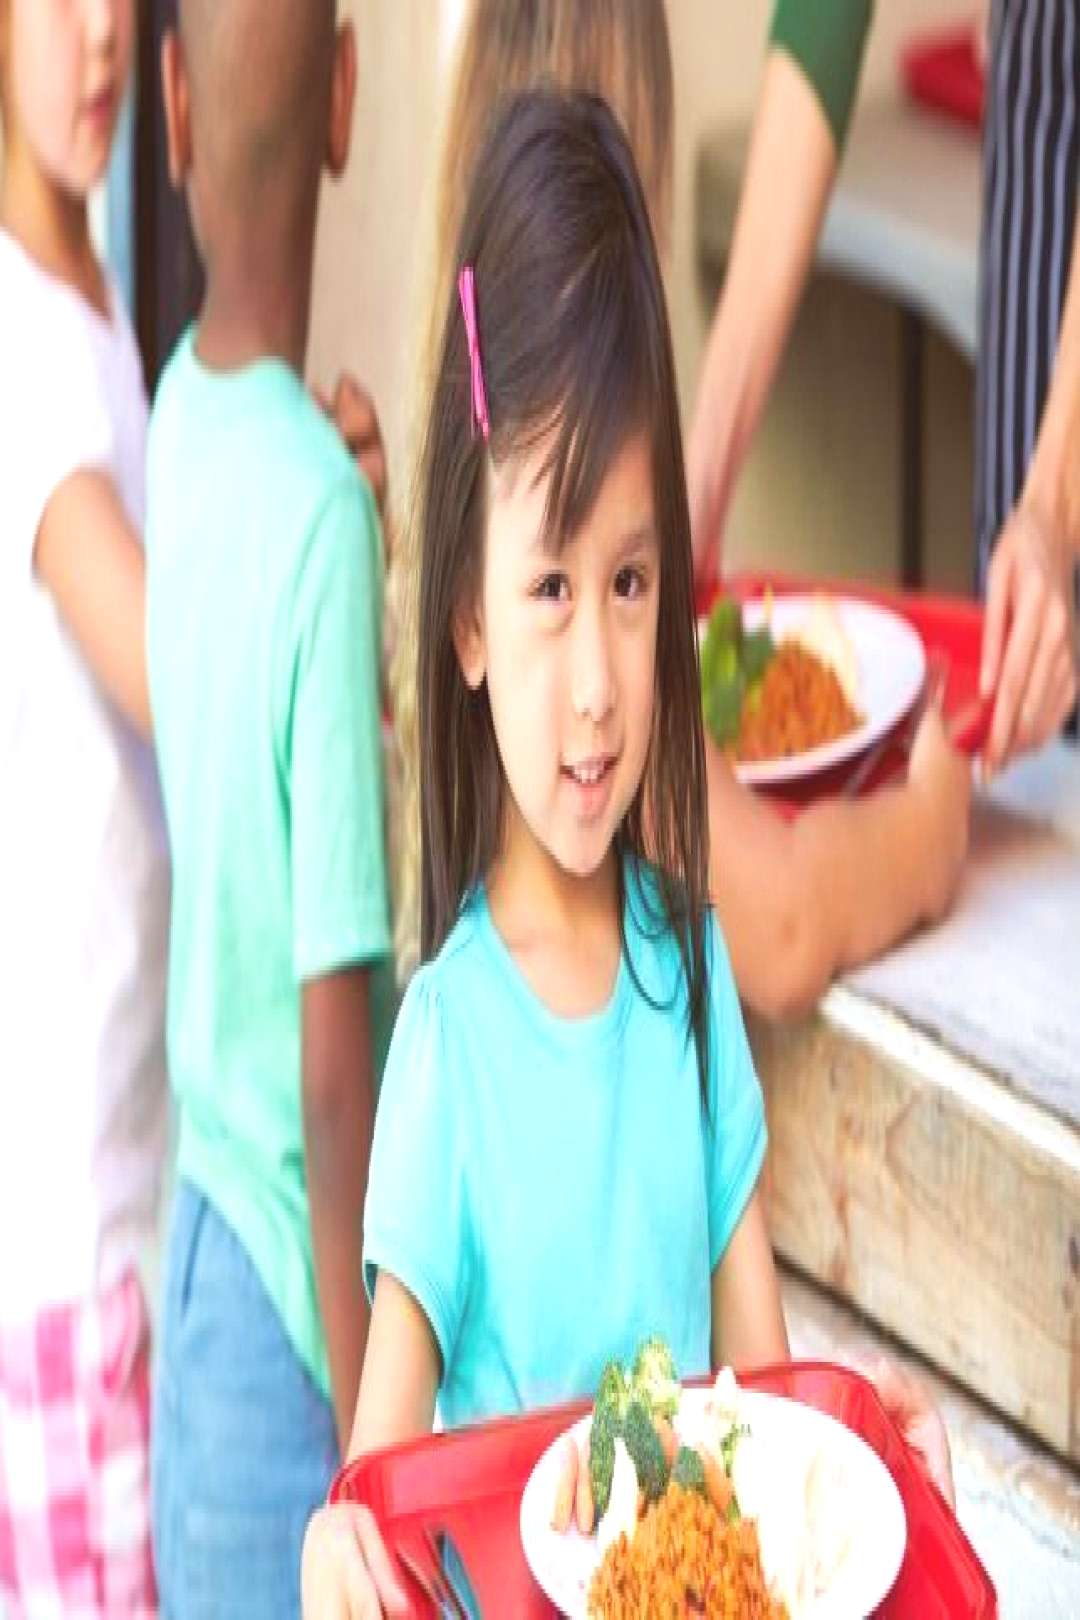 Why 2015 is a big year for child nutrition Why 2015 is a big year for child nutrition | MNN - Mothe